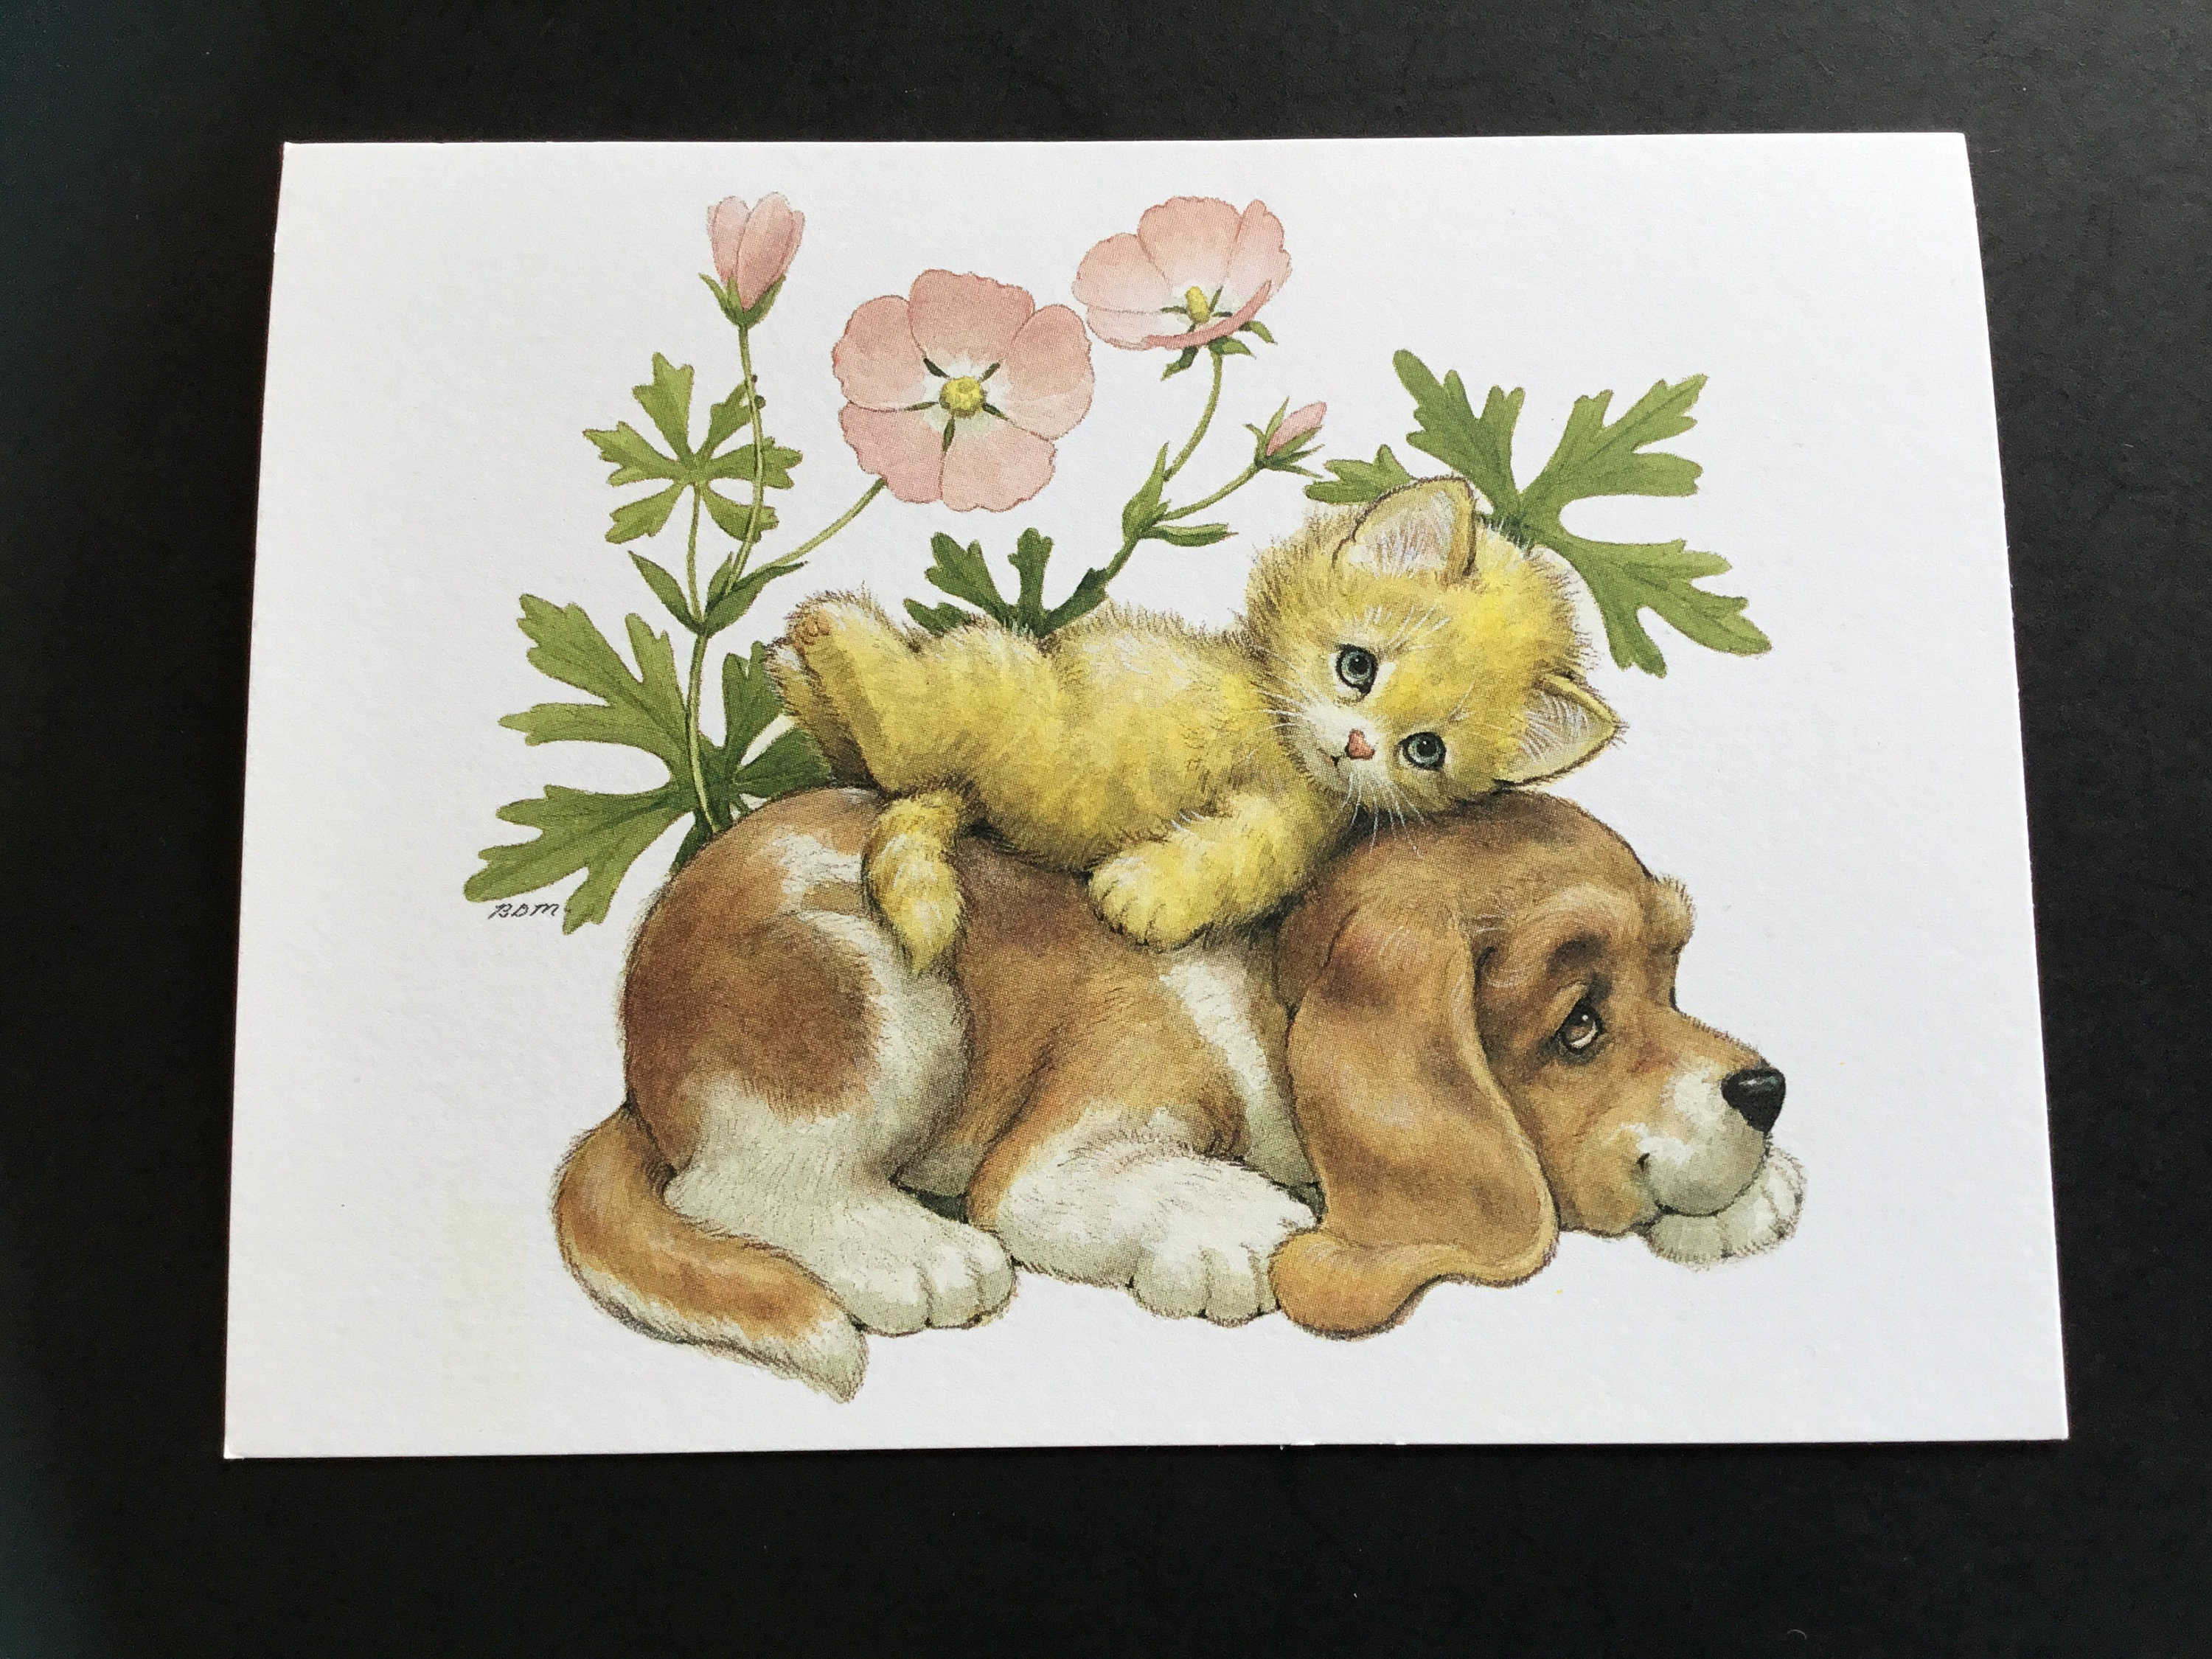 Vintage Unused Puppy Toes Birthday Greeting Card By Etsy